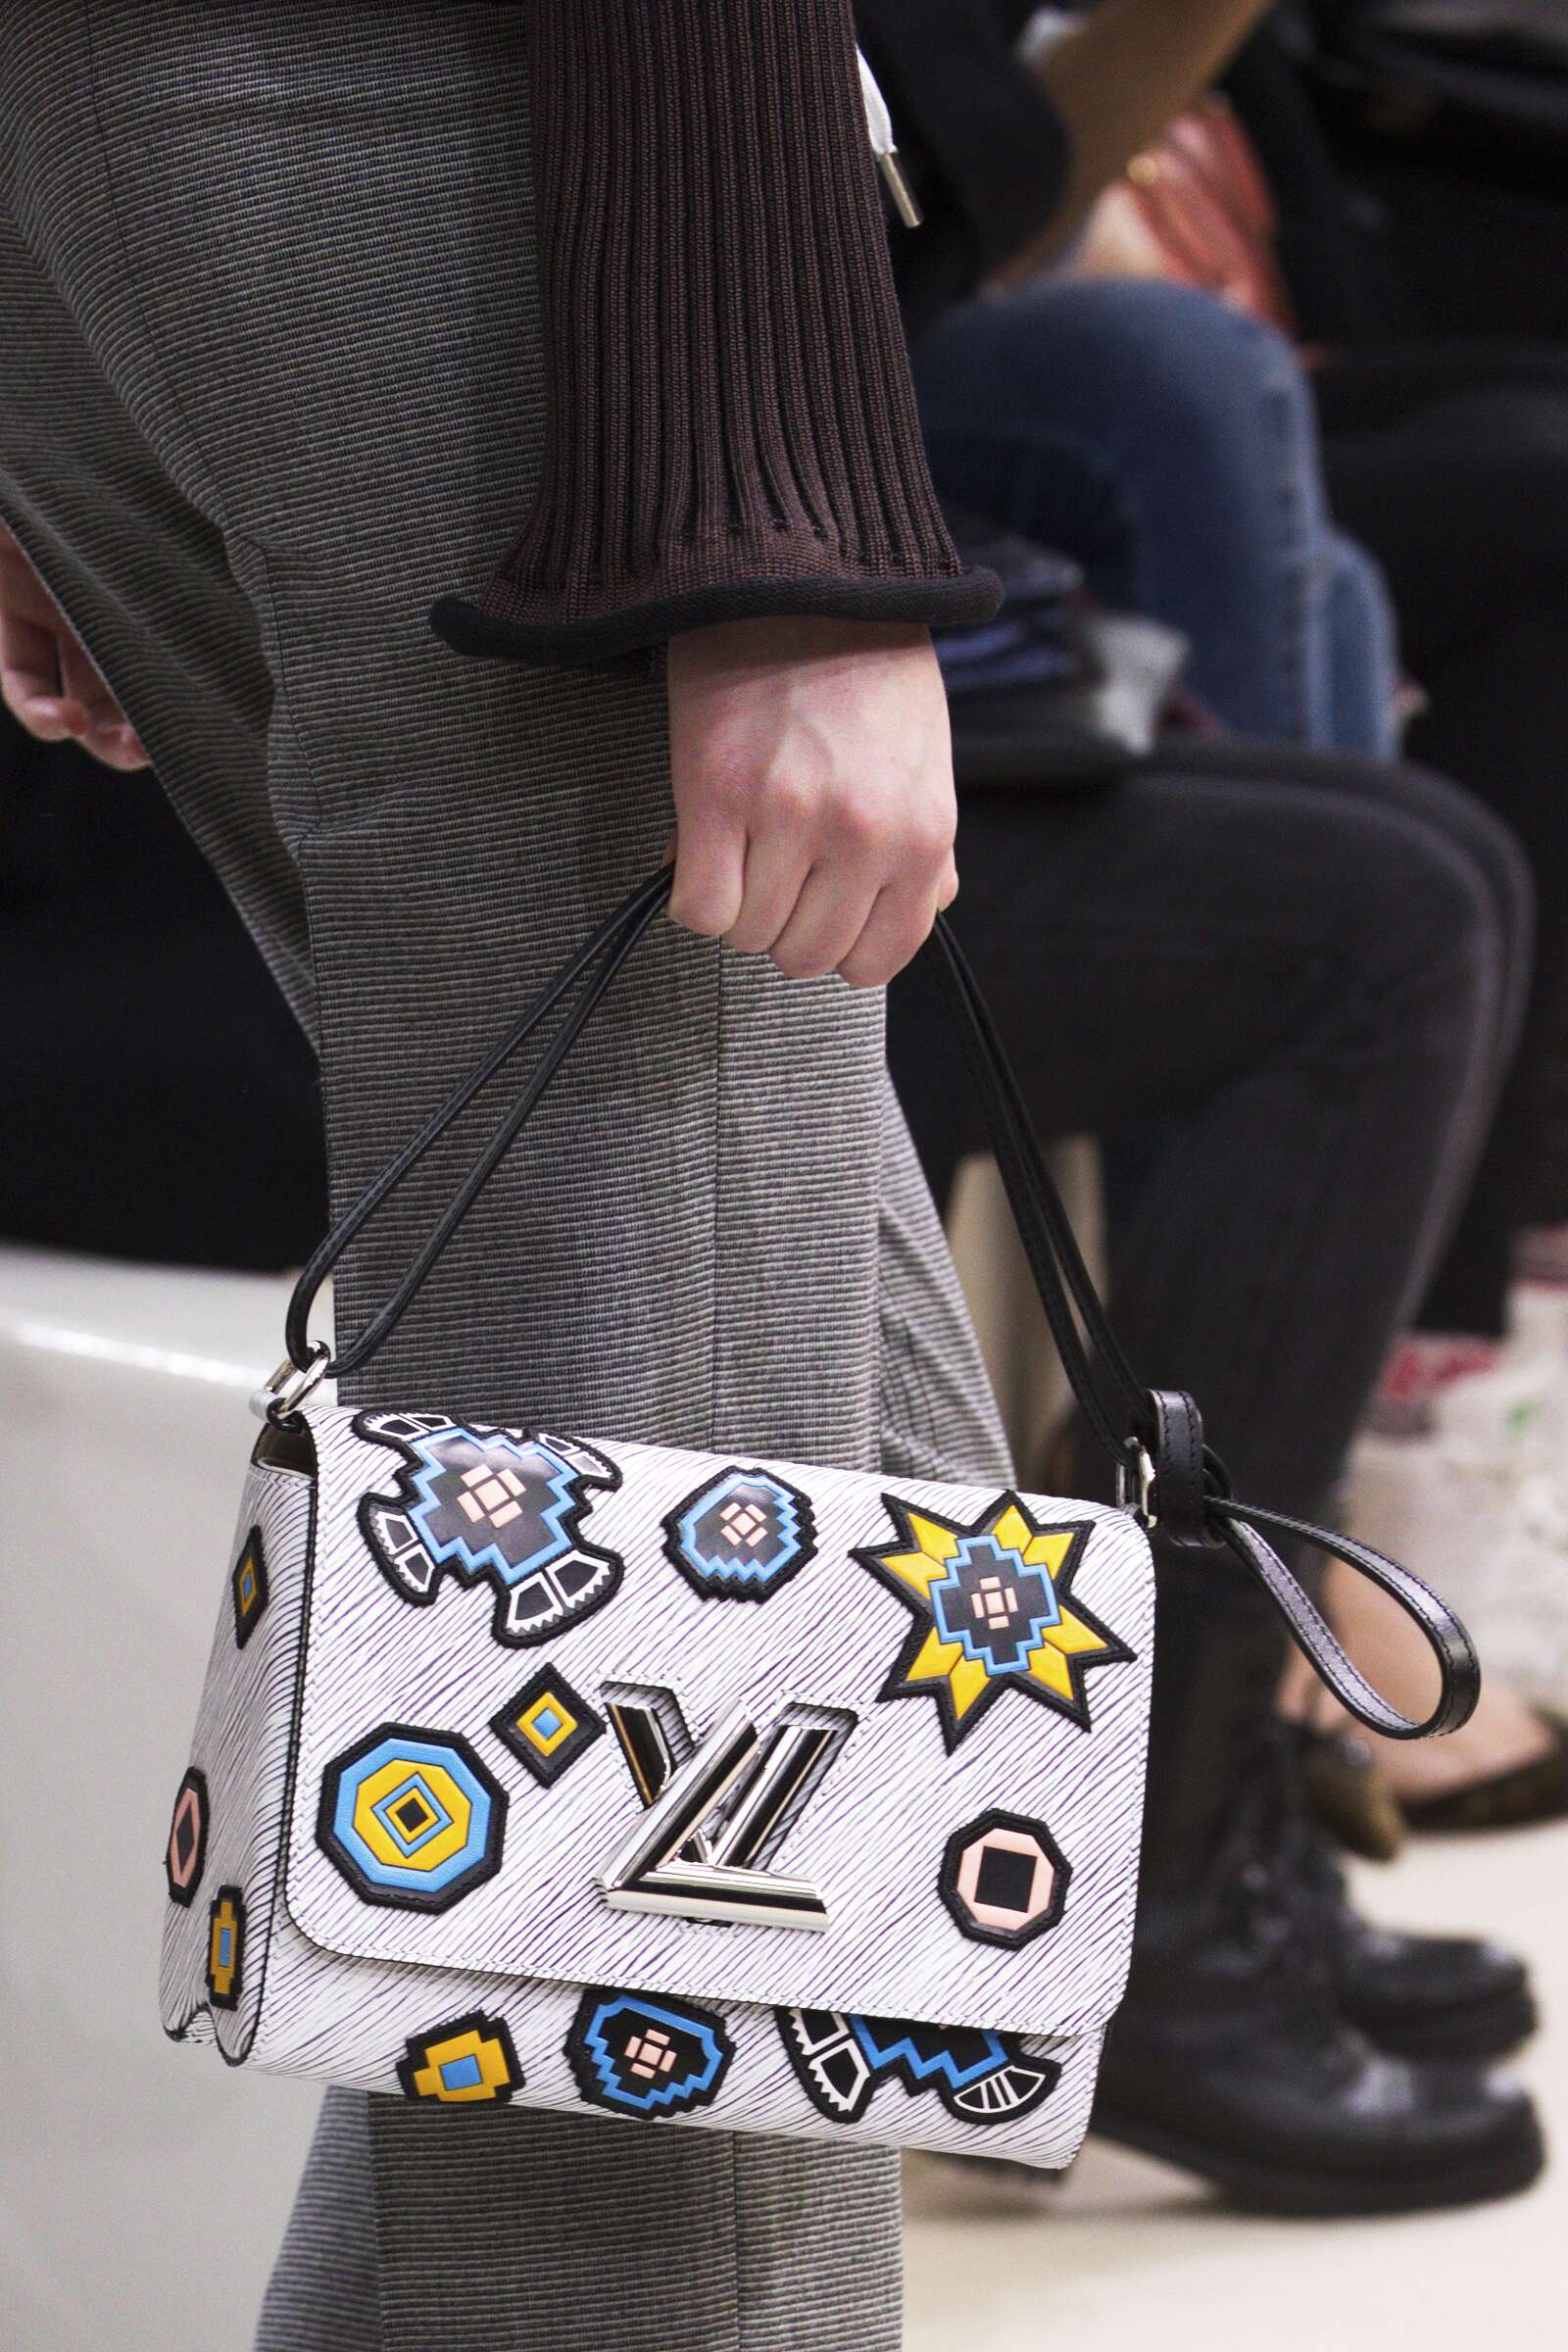 Louis Vuitton Bag Details Collection Trends Fall 2015 Catwalk